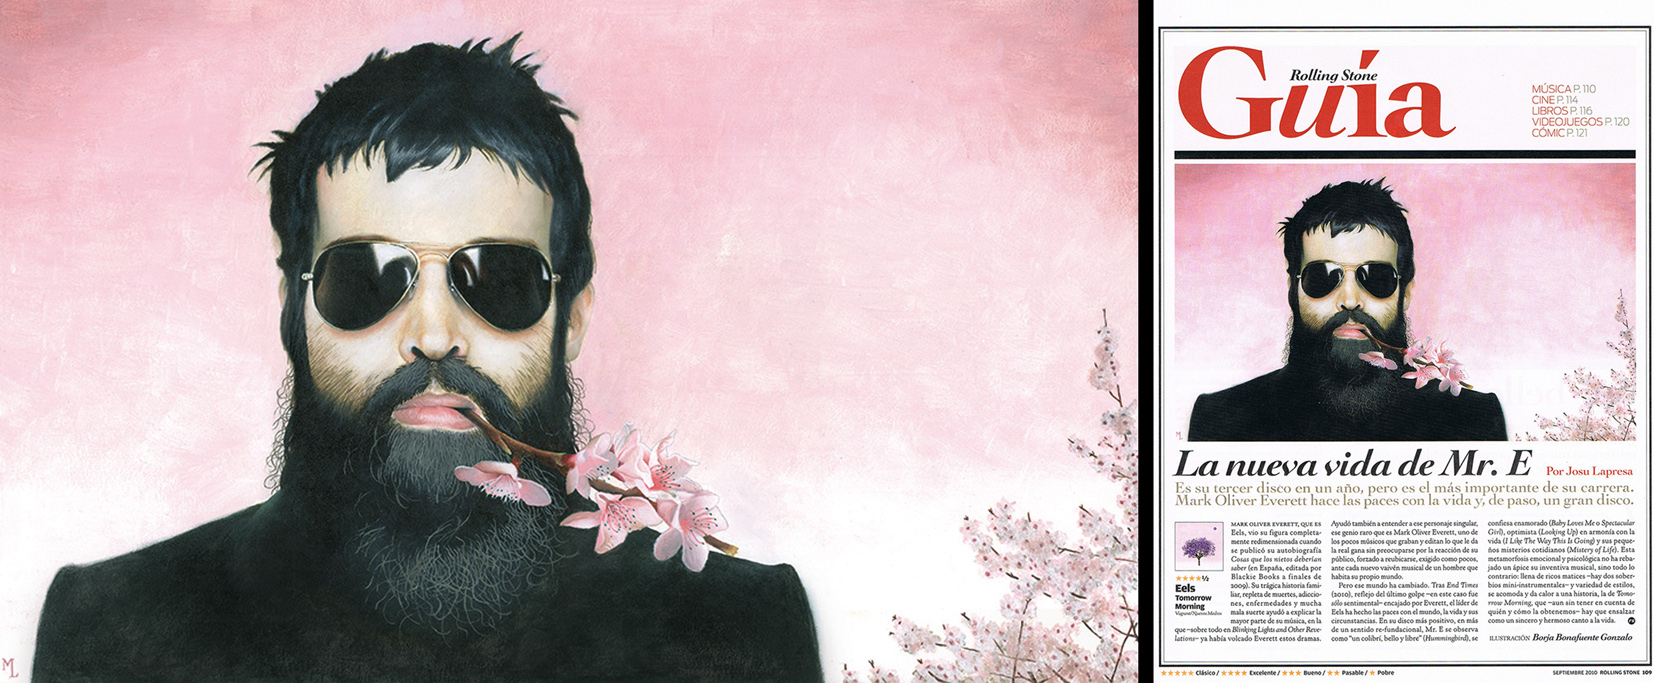 The Eels / Rolling Stone